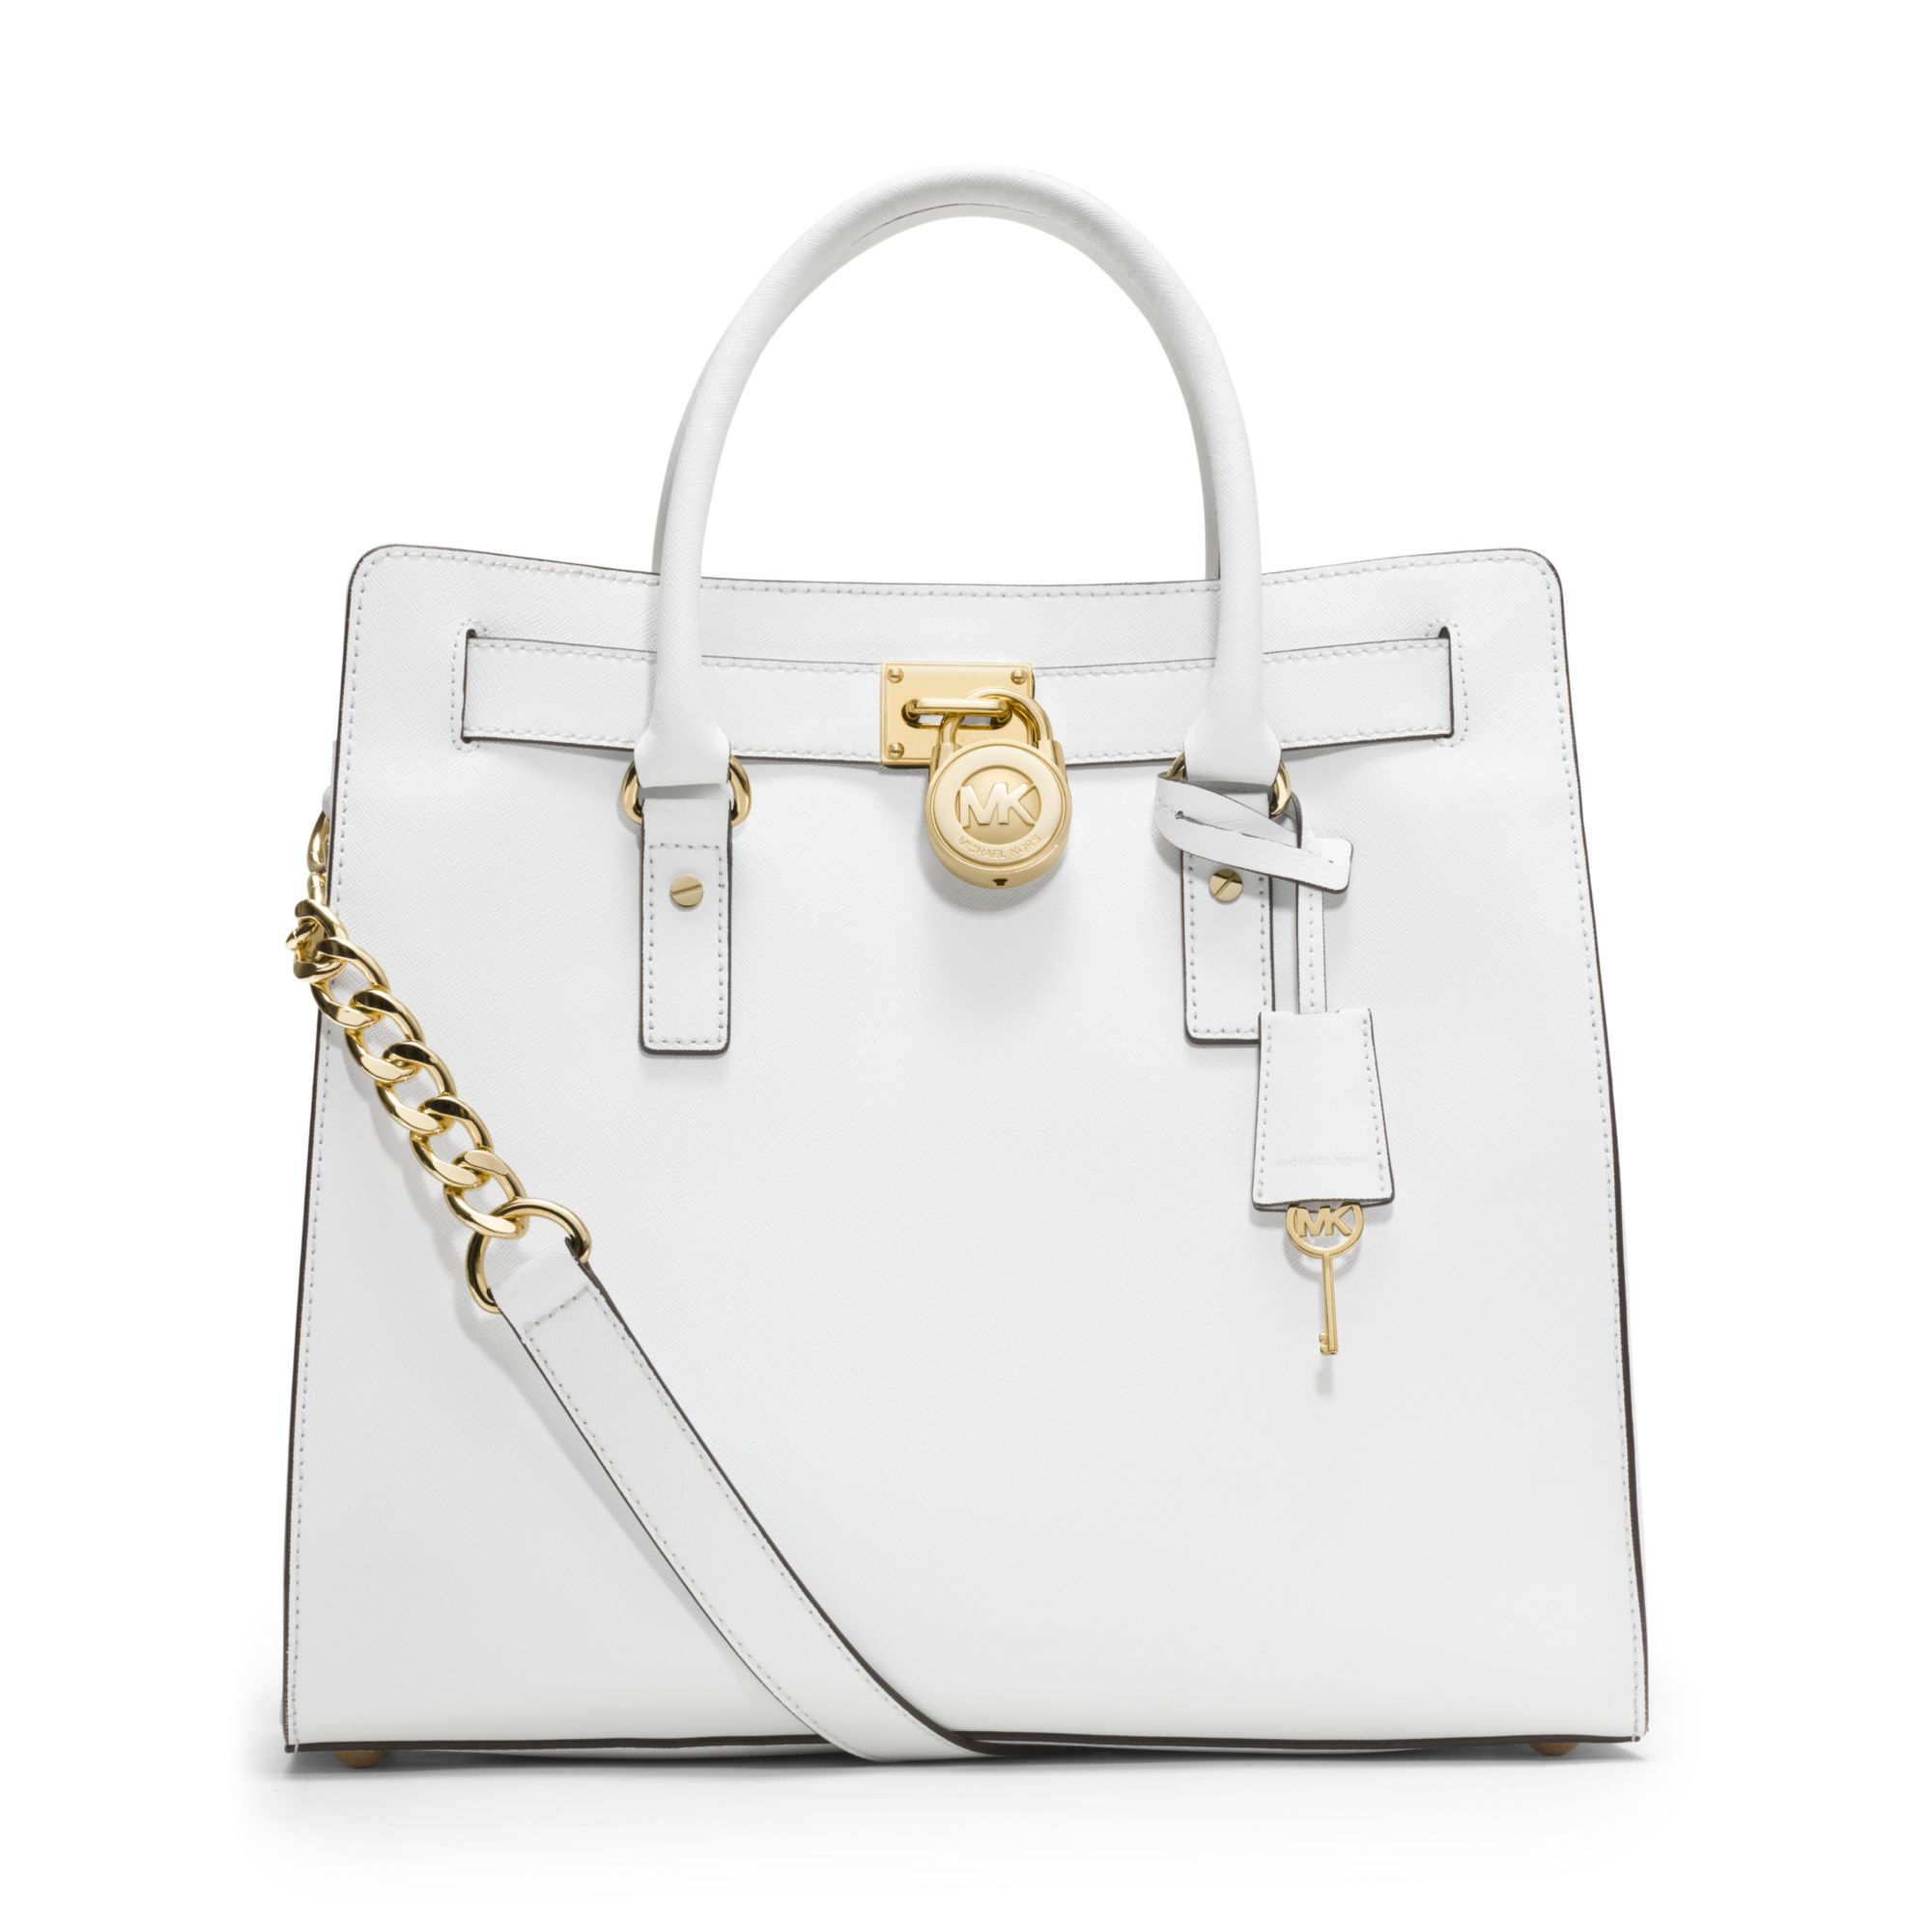 michael kors hamilton large saffiano leather tote in white lyst. Black Bedroom Furniture Sets. Home Design Ideas